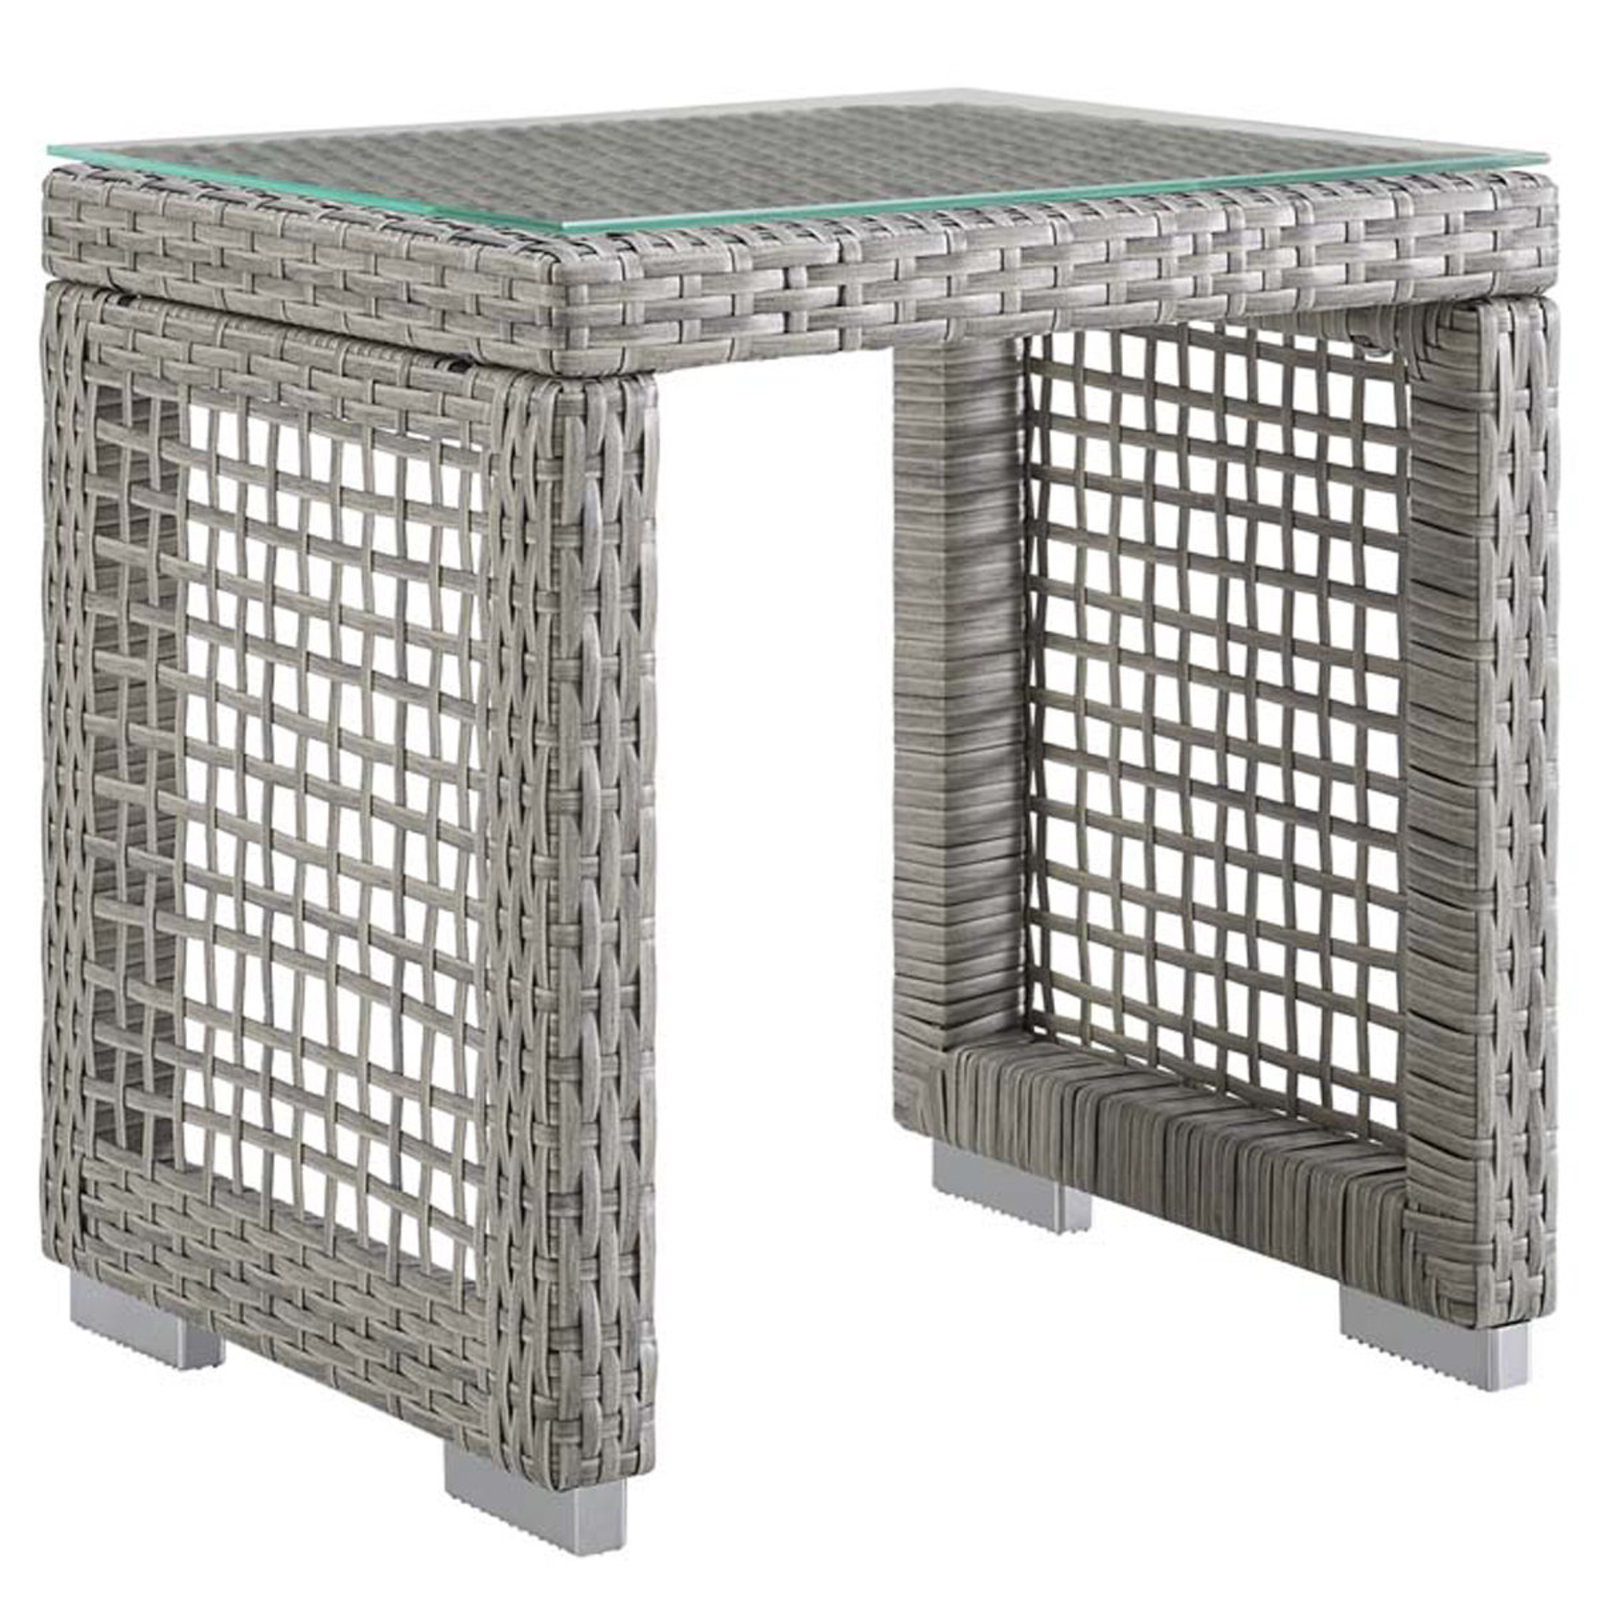 modern open weave outdoor side table shades light grey gray square tables living room narrow mirrored bedside cabinets round oak end wine stoppers target cherry wood accent gold